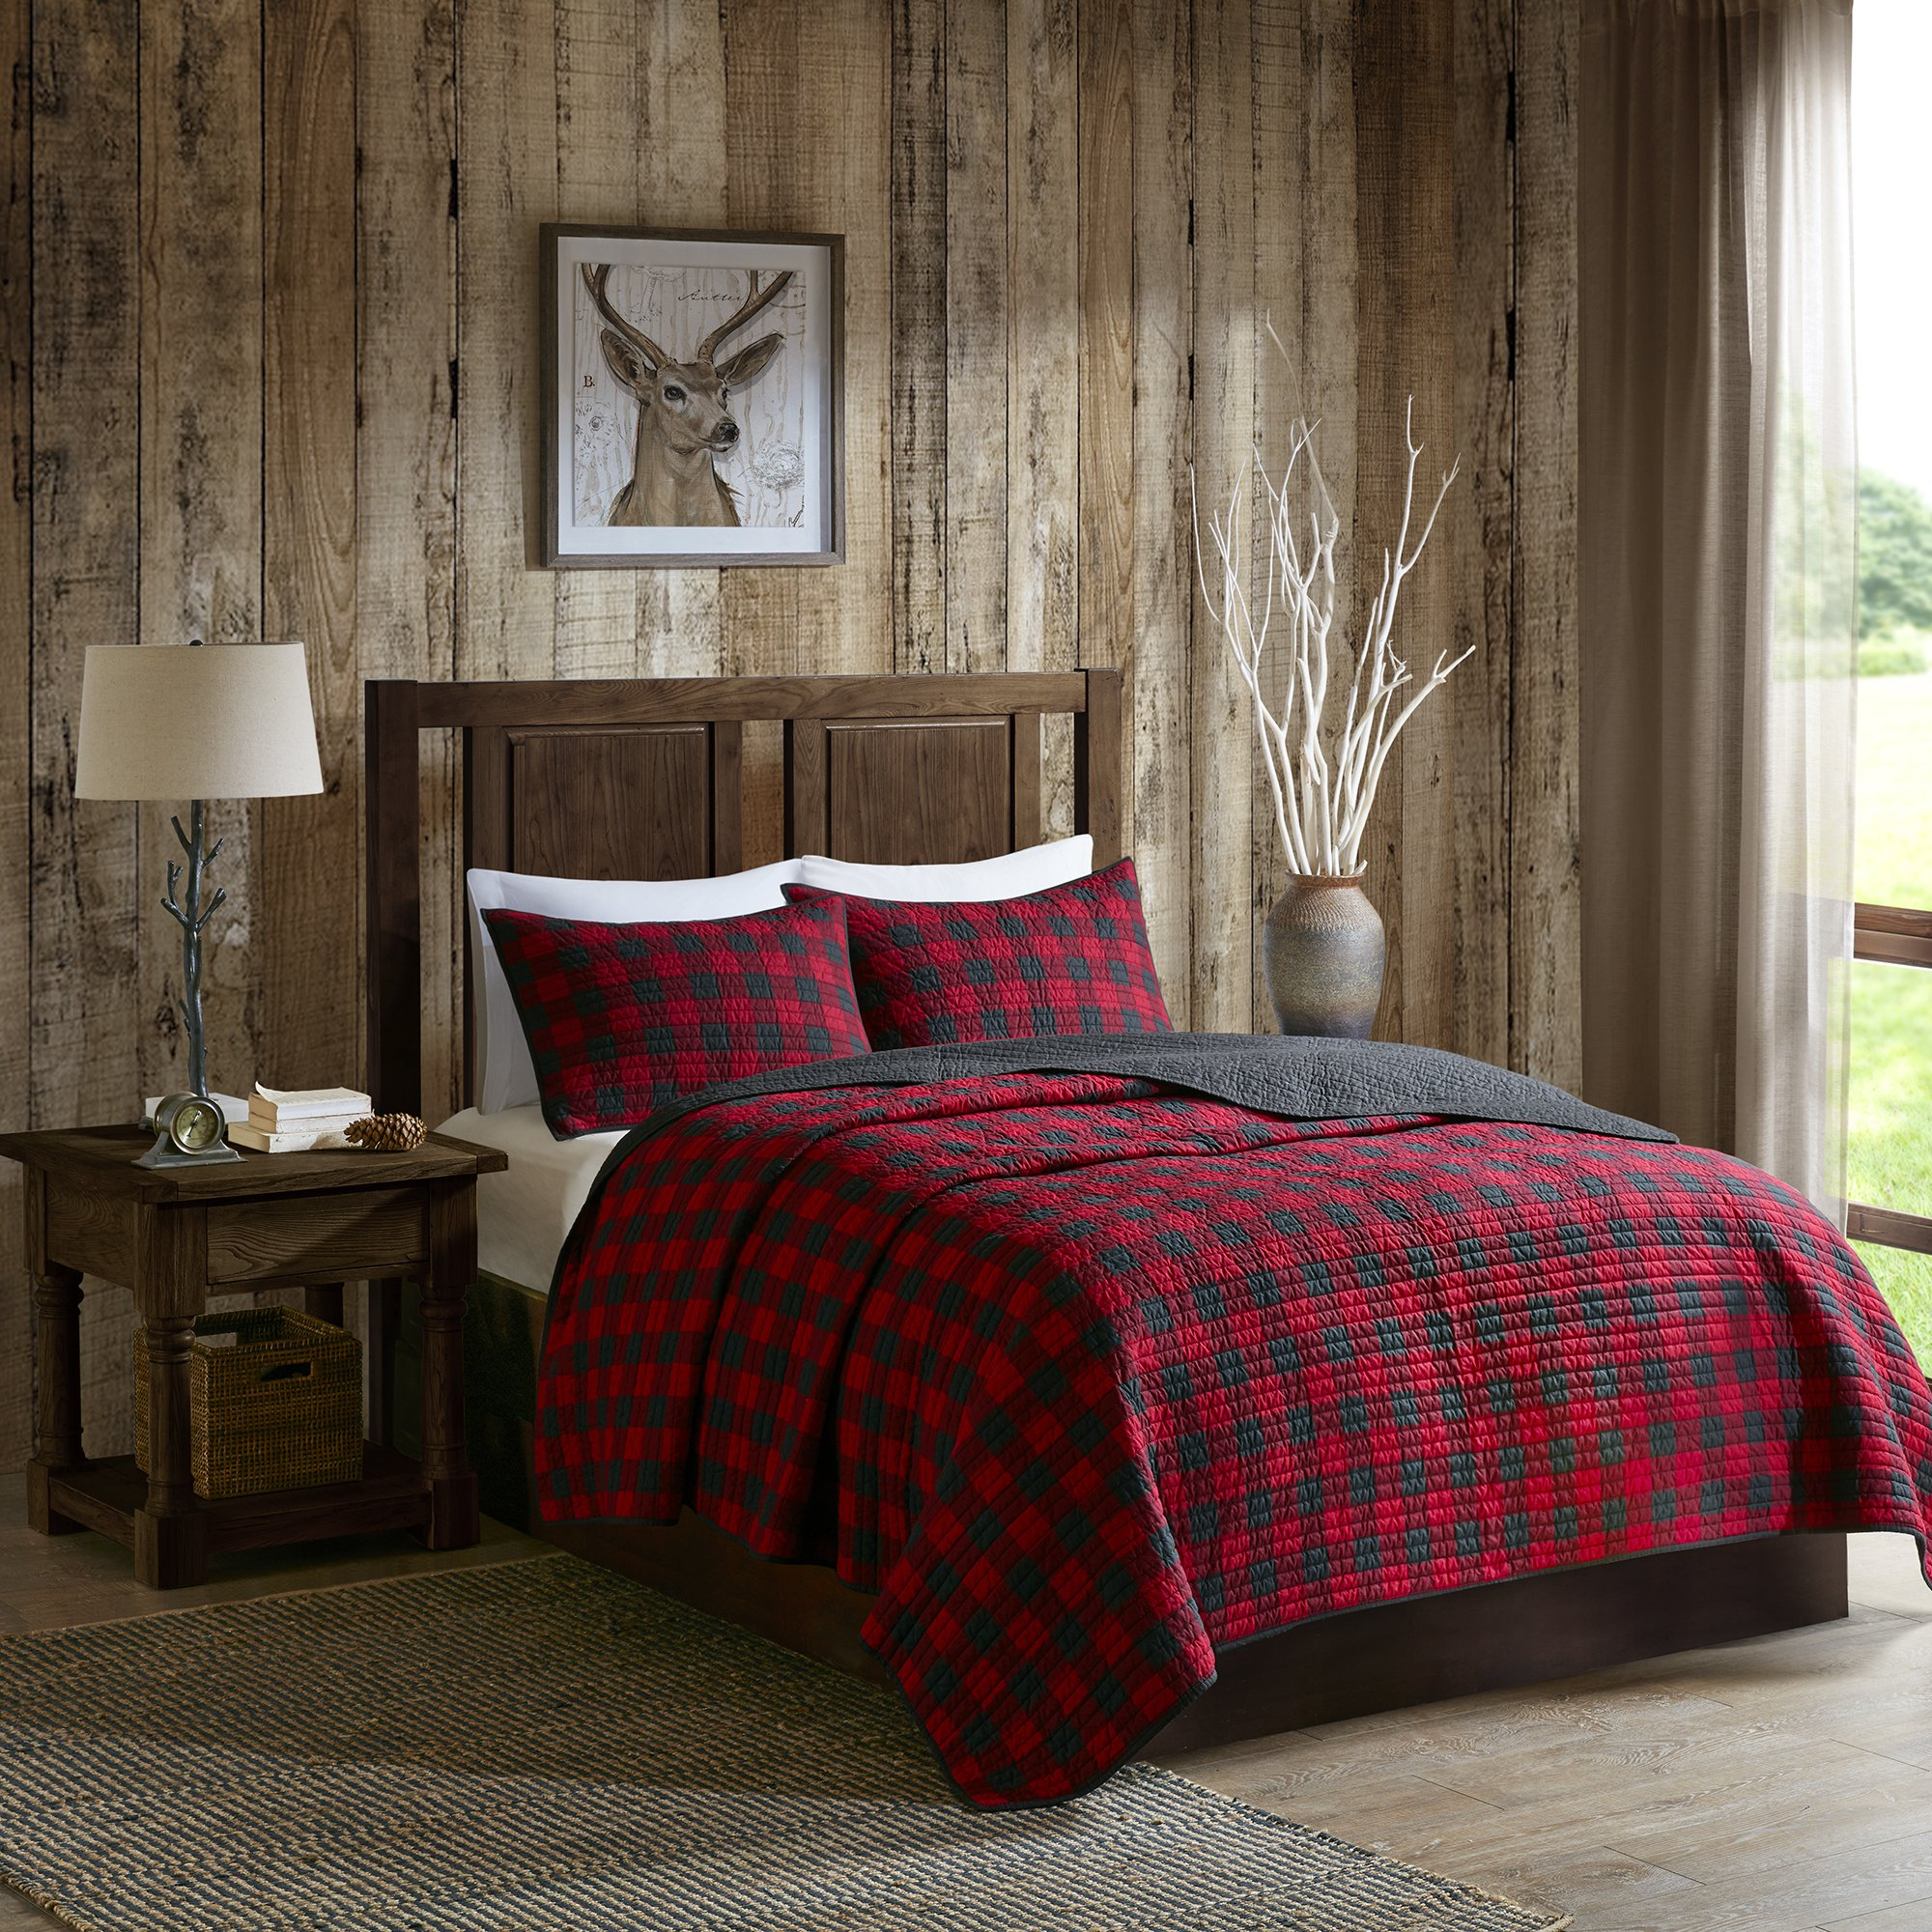 Woolrich Check Full/Queen Size Quilt Bedding Set - Red, Check – 3 Piece Bedding Quilt Coverlets – Cotton Bed Quilts Quilted Coverlet